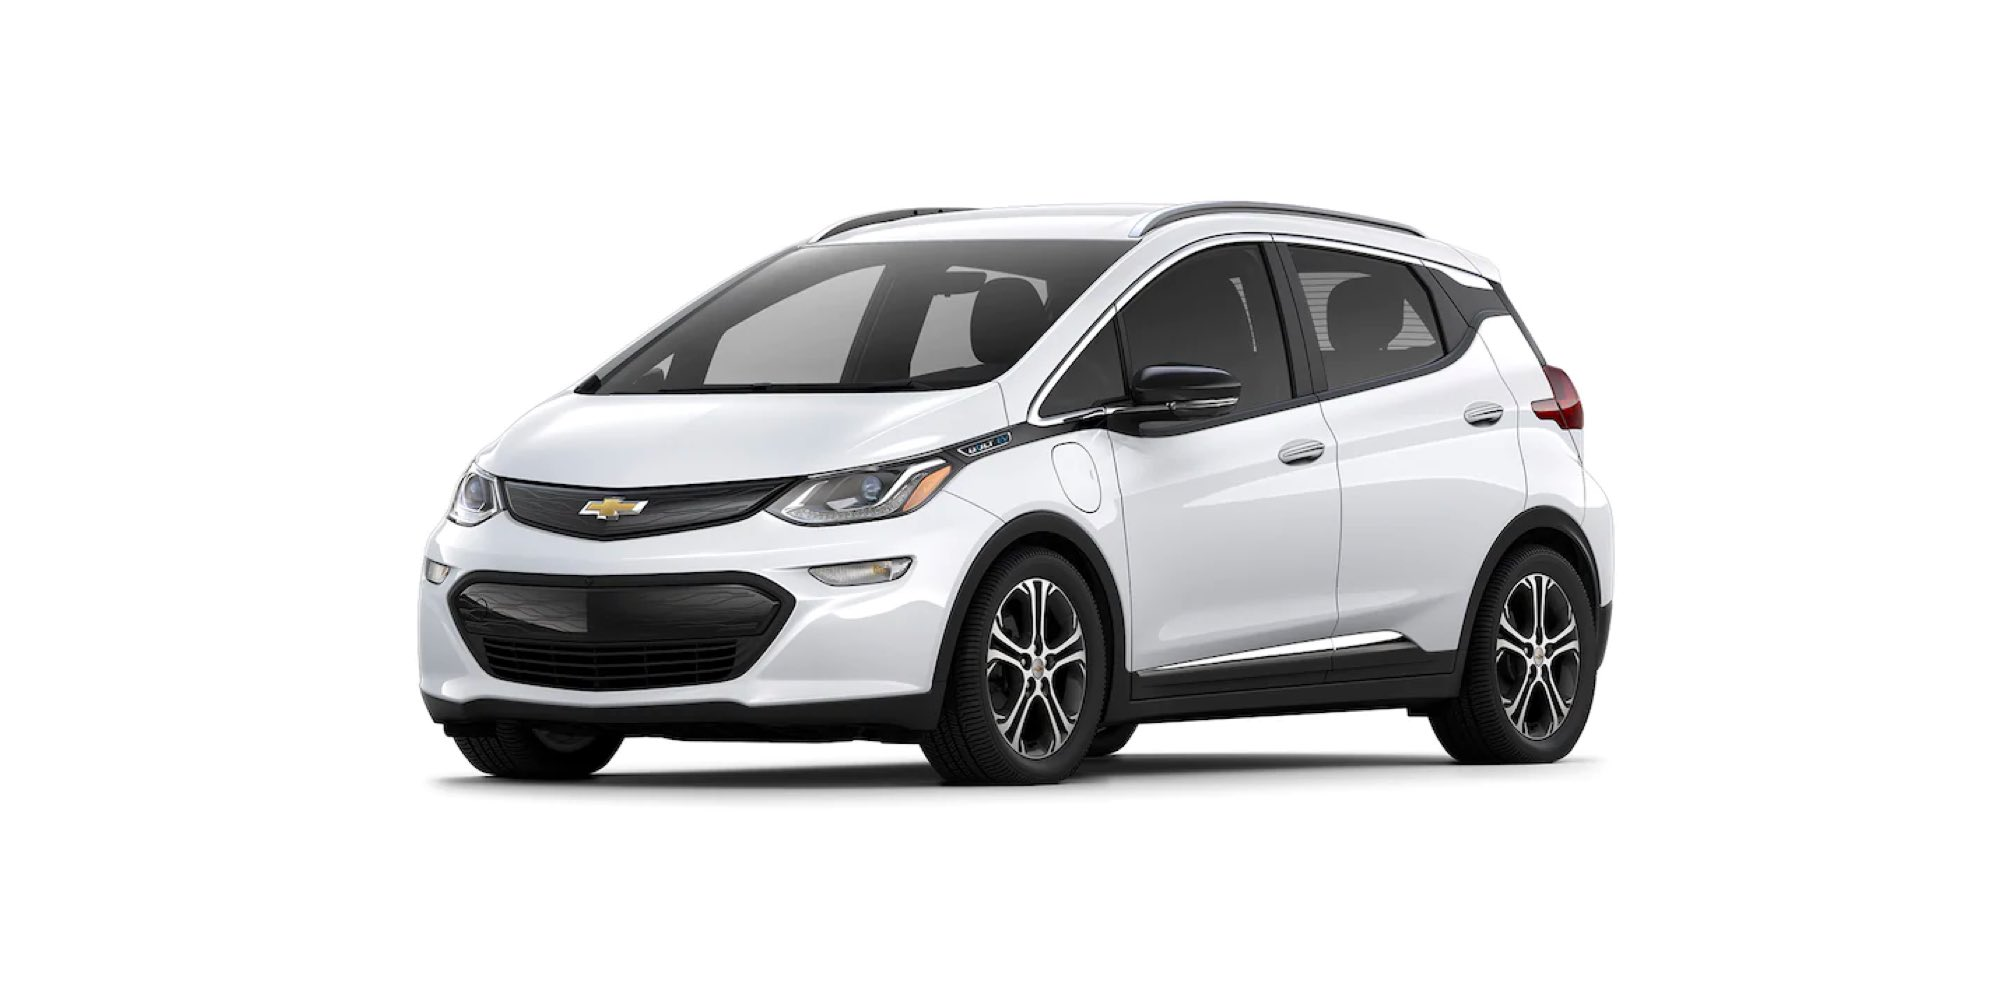 2021 Chevy Bolt EV in Summit White